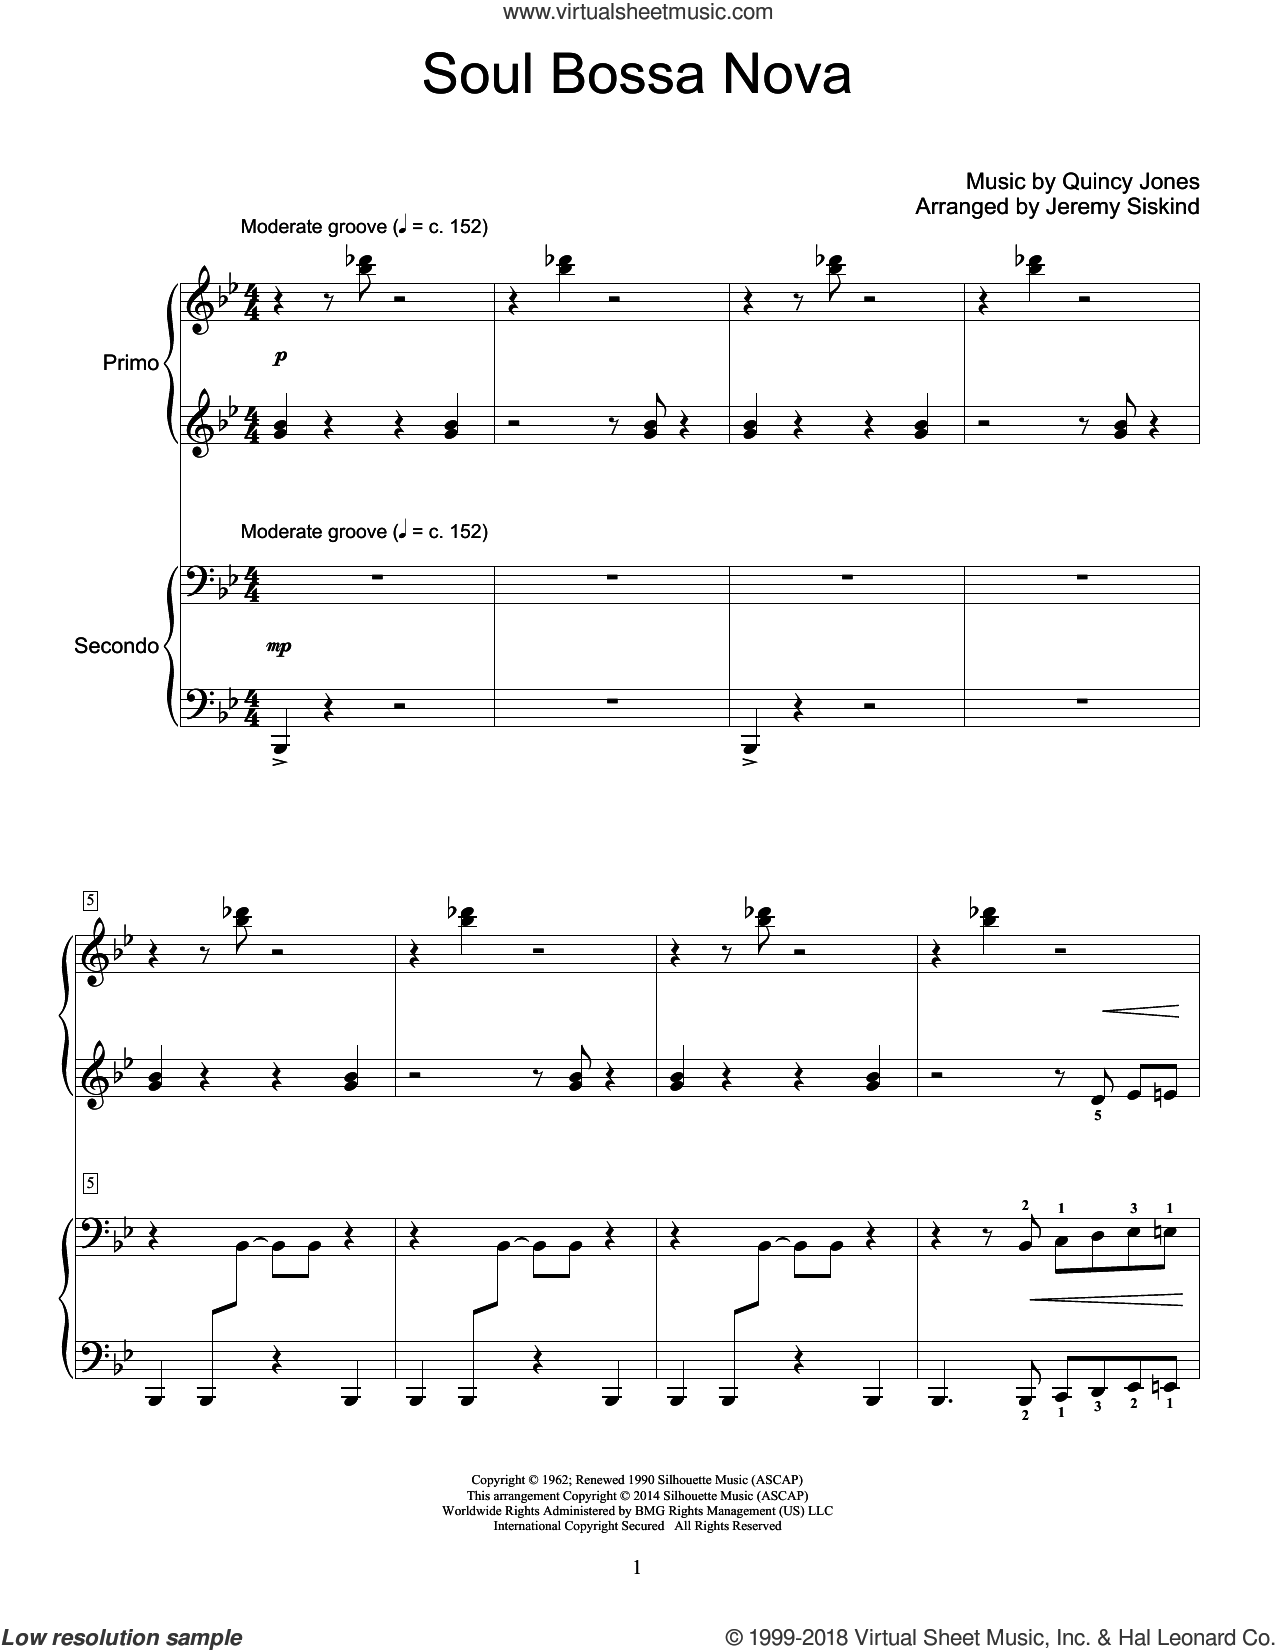 Soul Bossa Nova sheet music for piano four hands (duets) by Jeremy Siskind